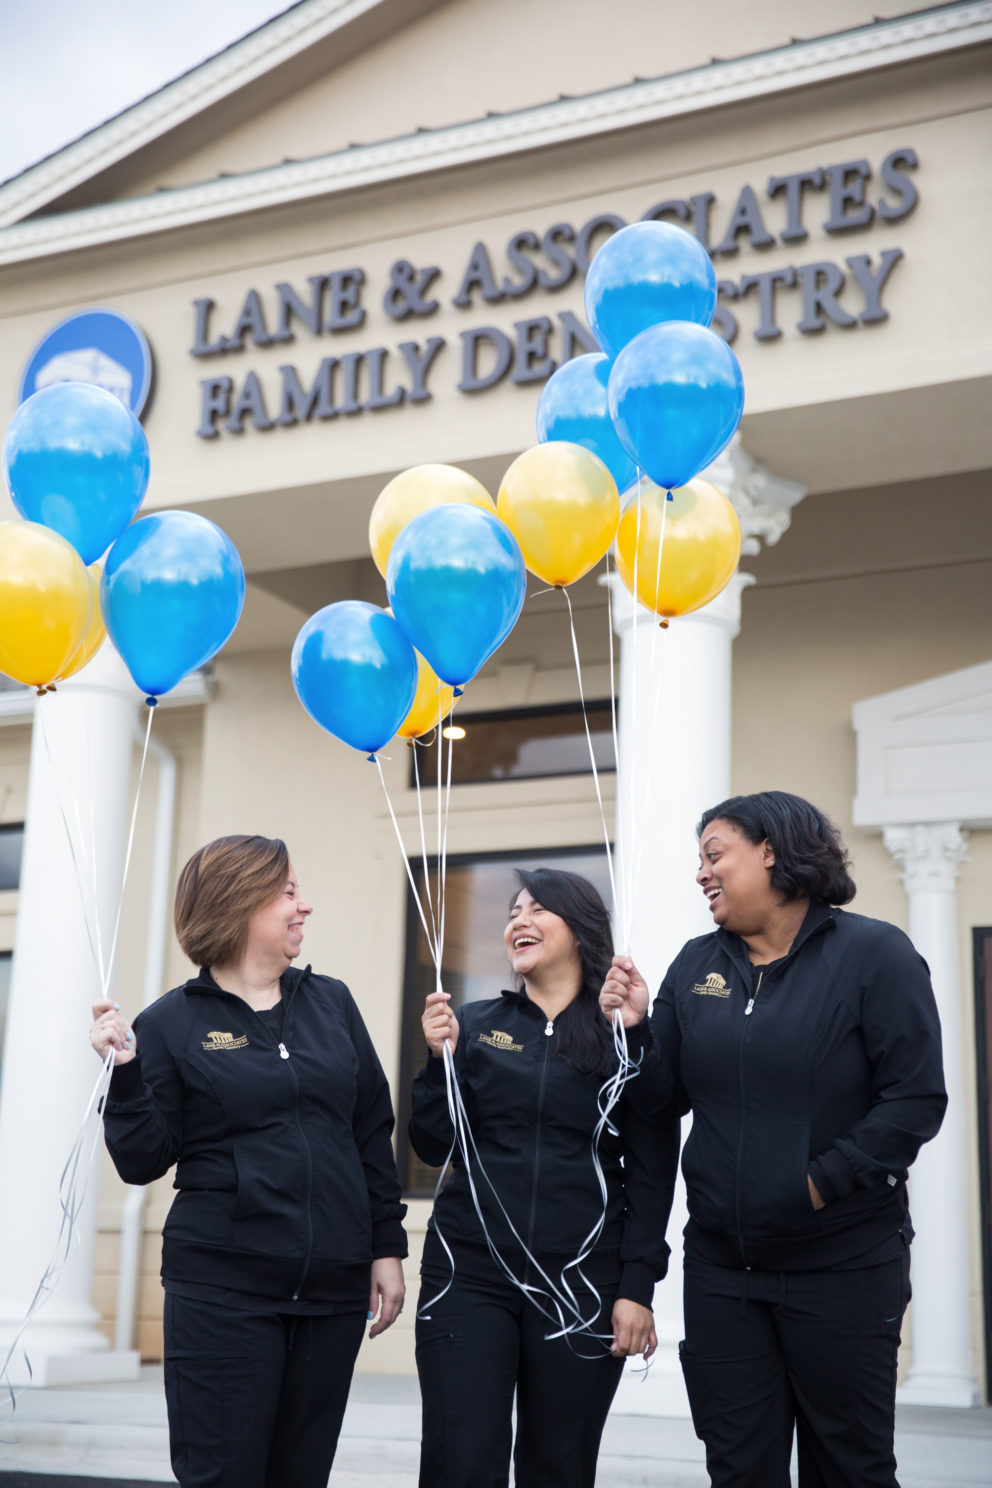 Group of Dental Assistants laughing with yellow and blue balloons in front of dental office in Winston Salem